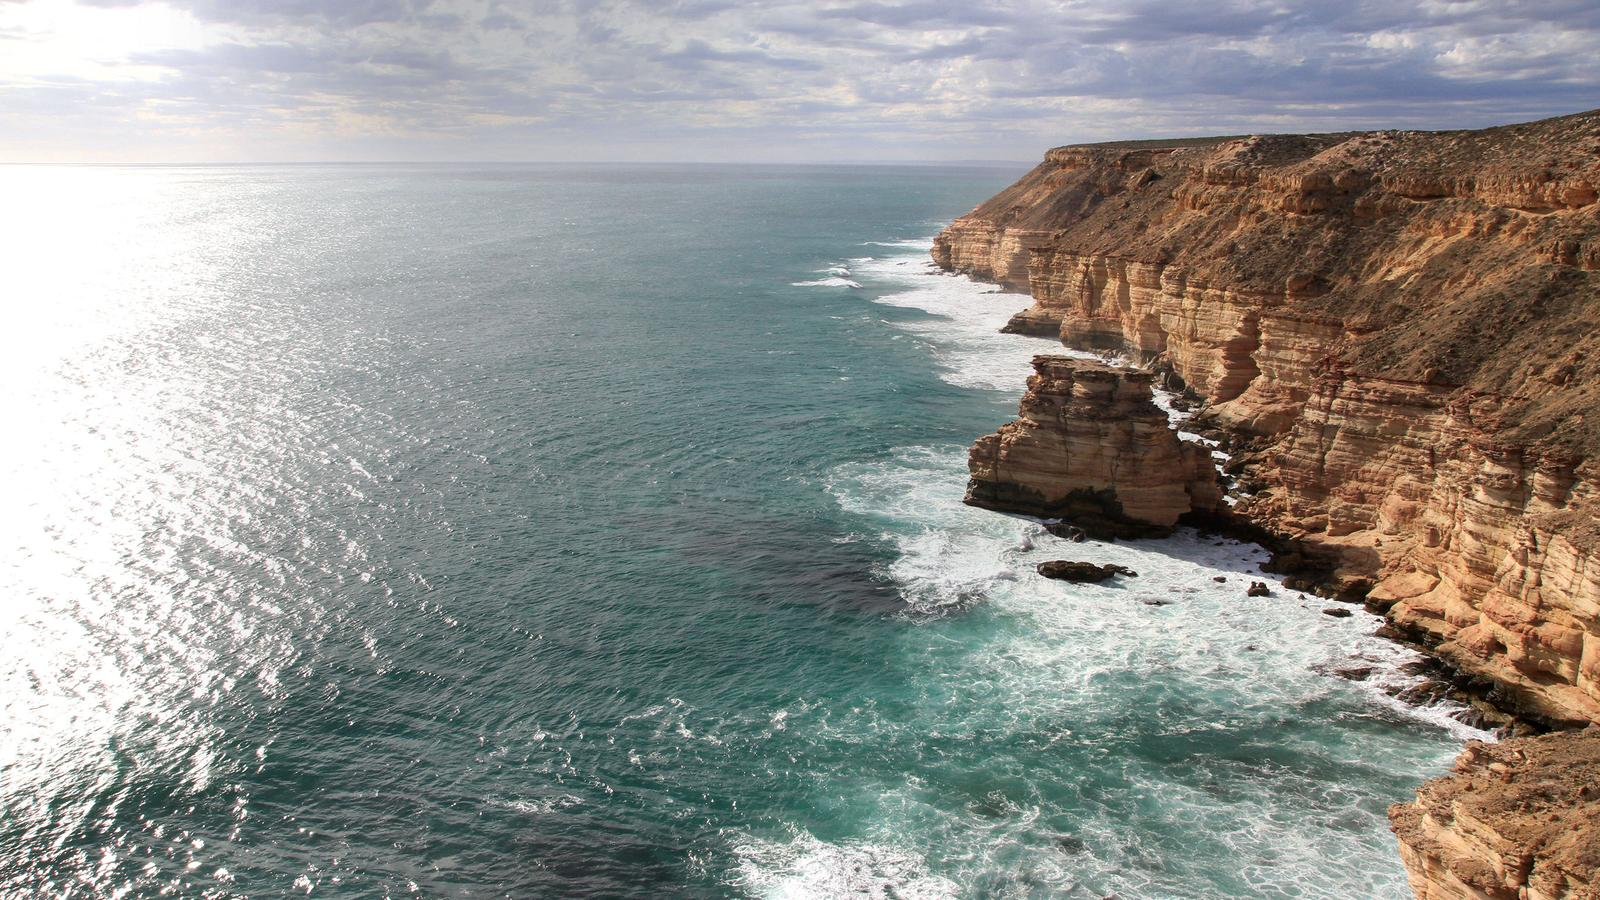 An aerial view of the giant Kalbarri coastal cliffs, Australia